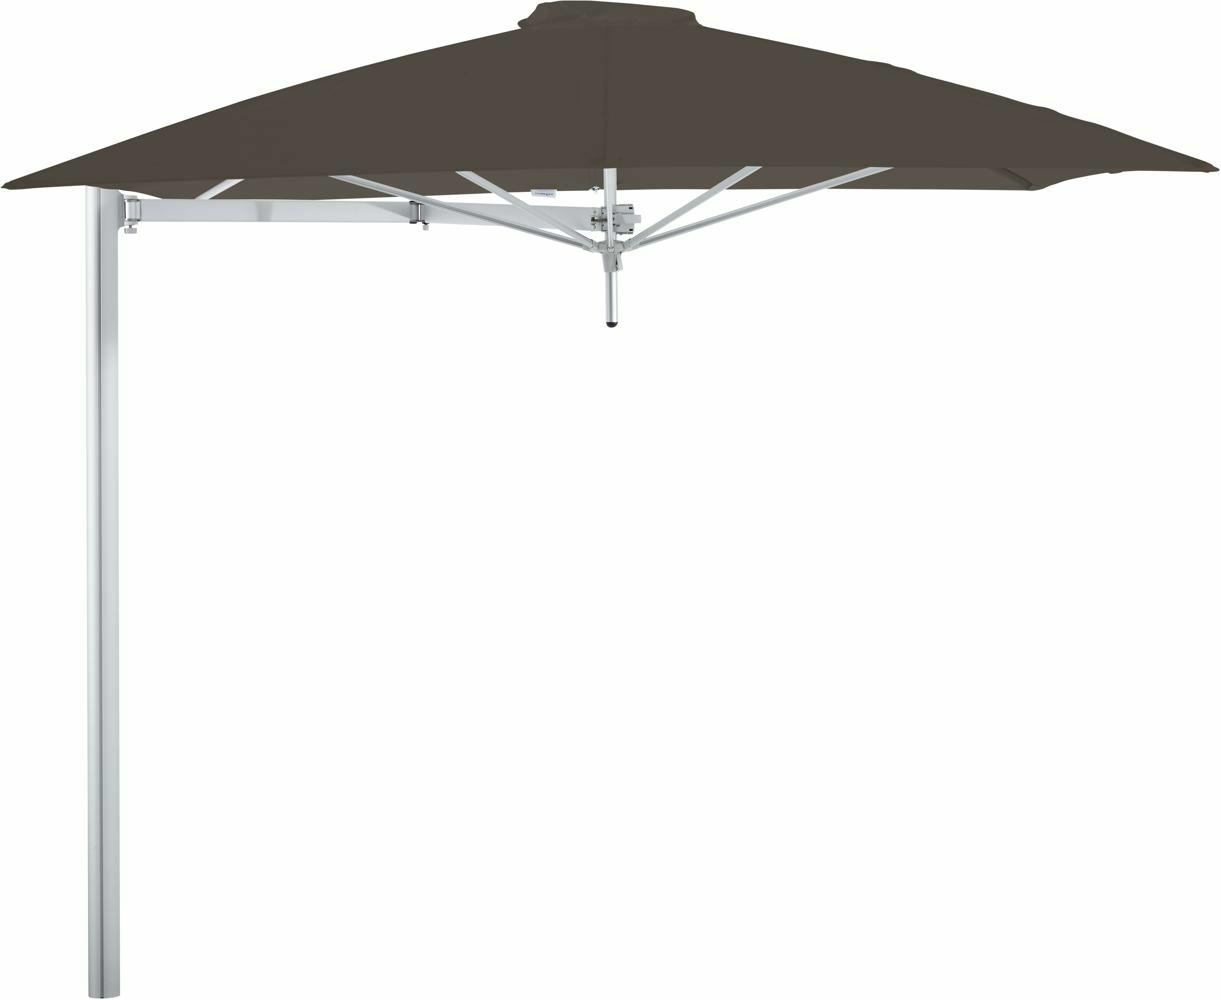 Paraflex cantilever umbrella square 2,3 m with Taupe fabric and a Neo arm